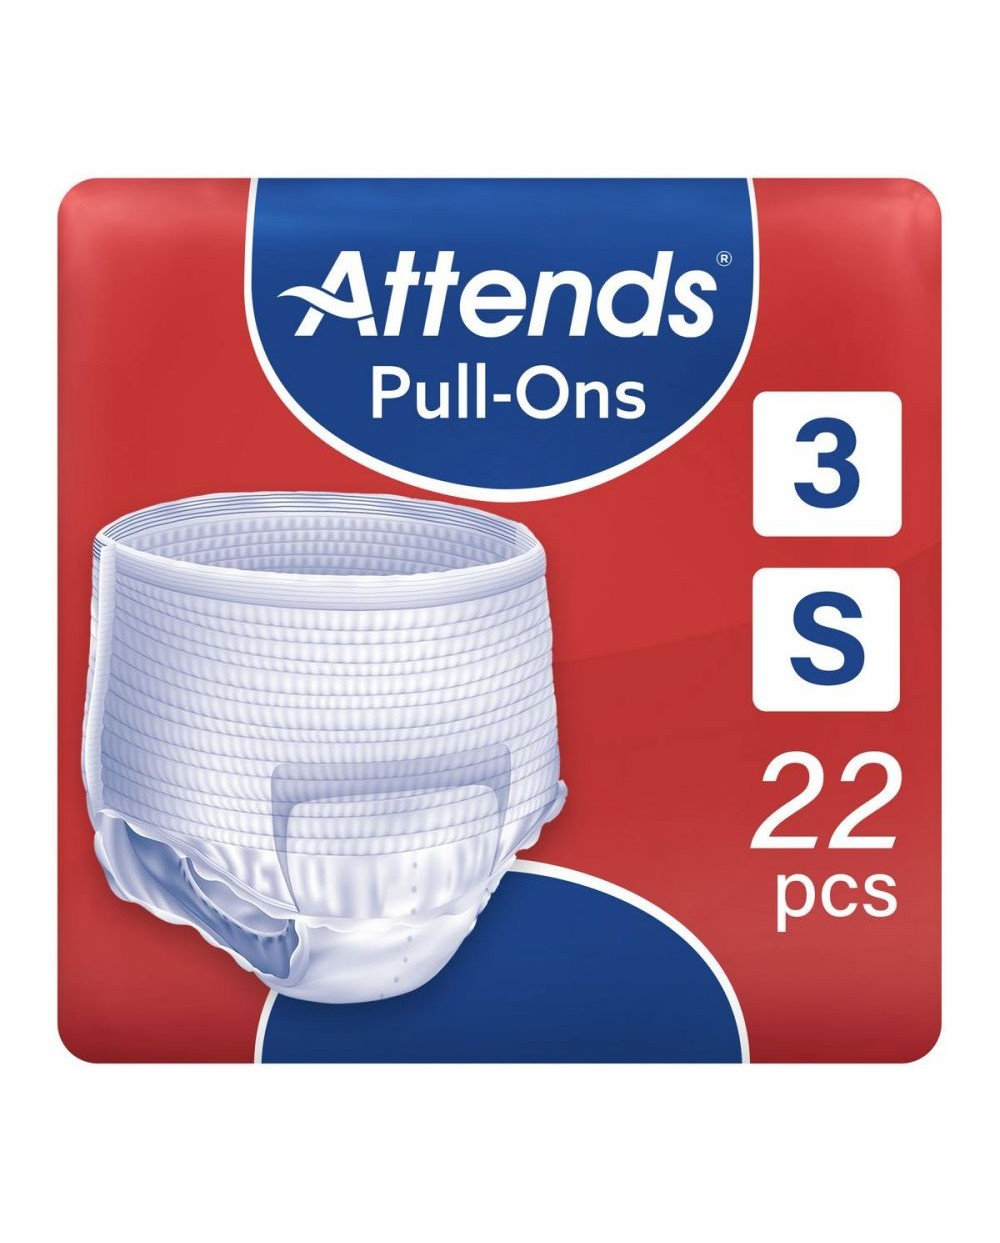 ATTENDS Pull-Ons 3 Small - 22 protections